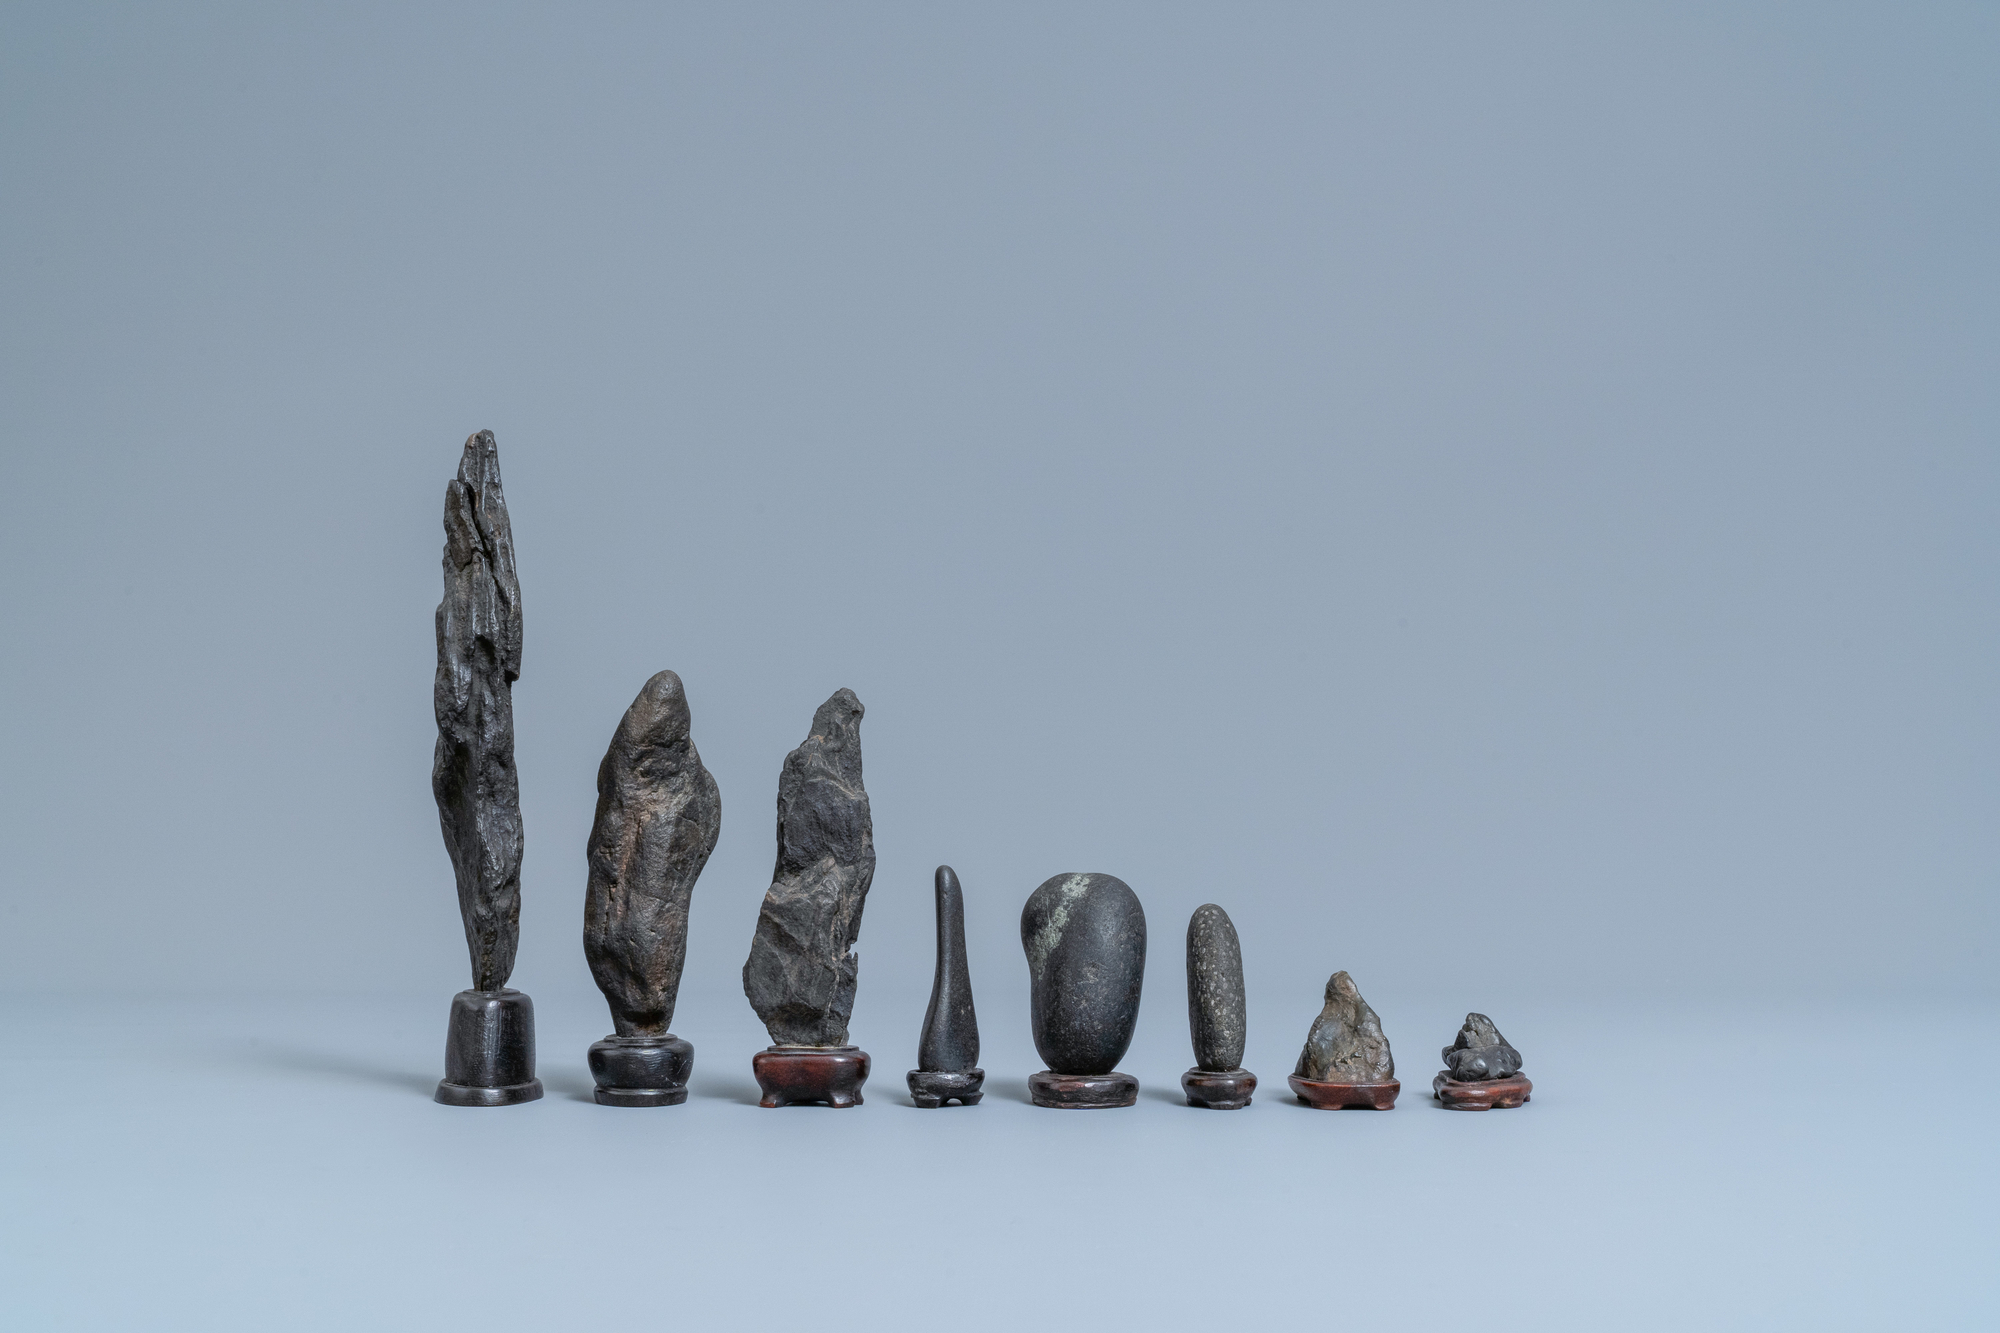 Eight Chinese scholar's rocks on wooden stands, 19/20th C. - Image 5 of 7